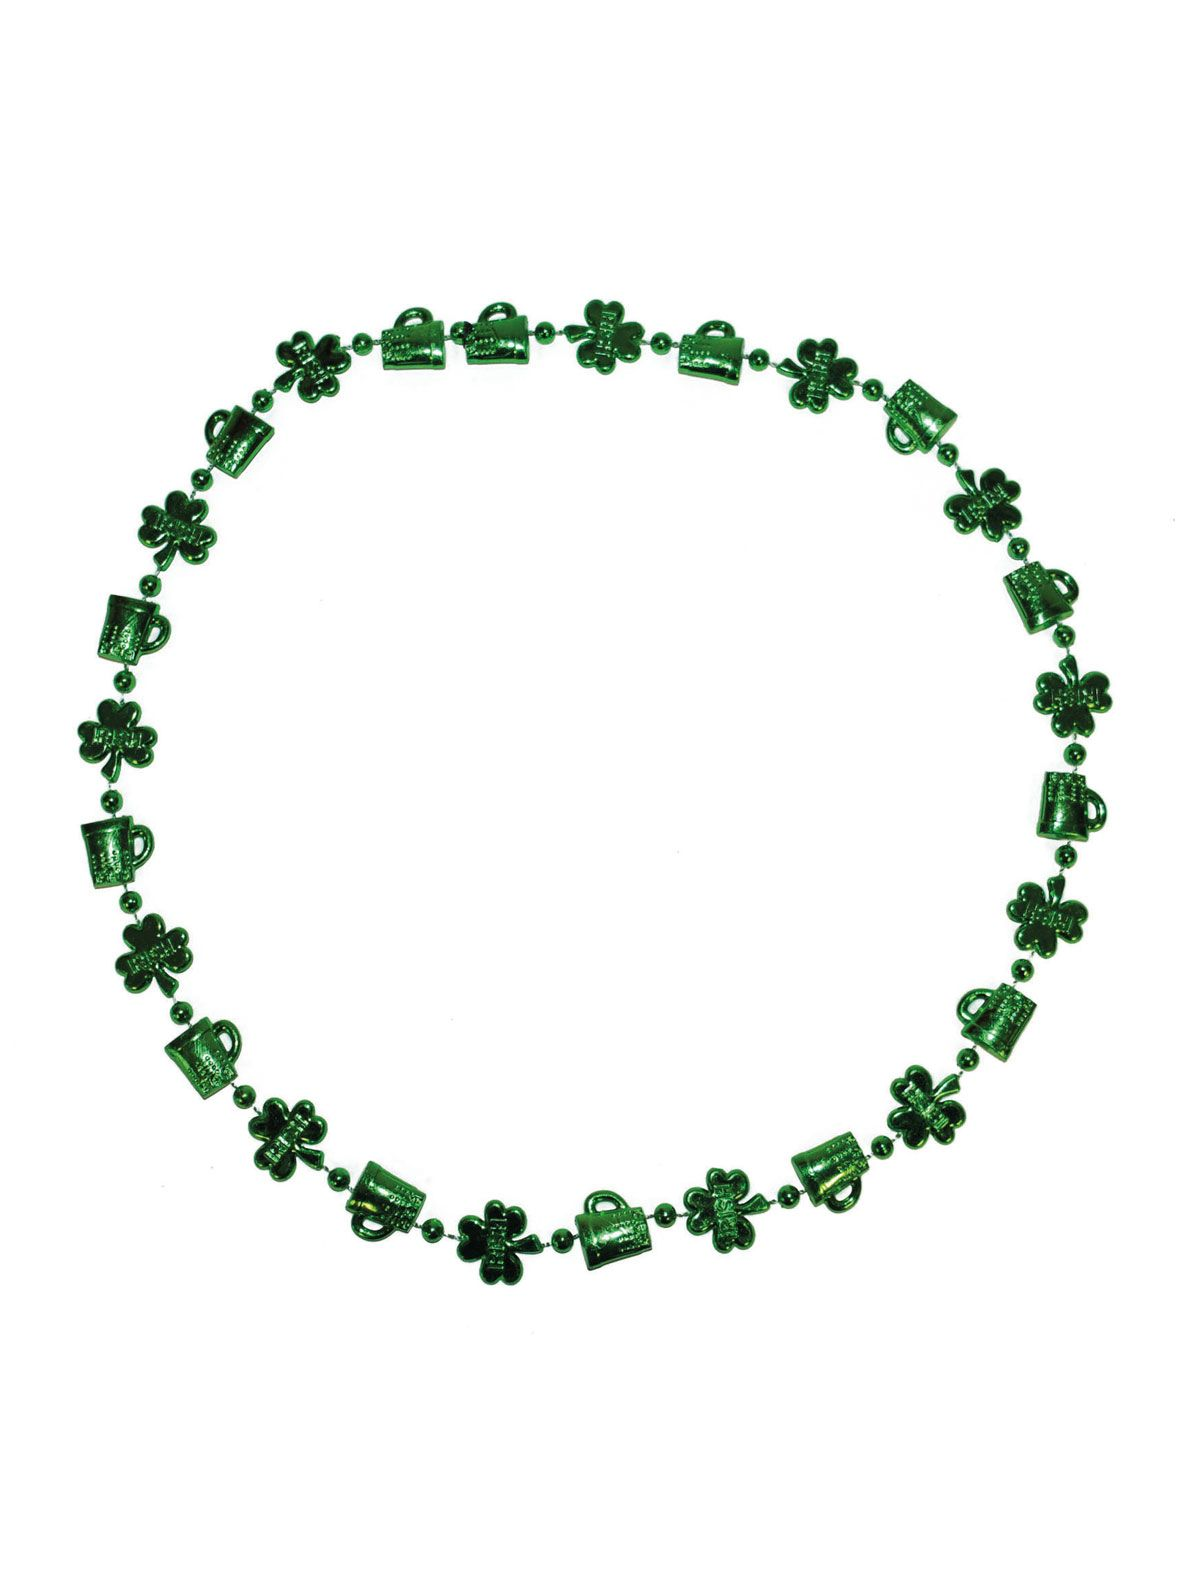 Ketting St. Patrick's Day Groen